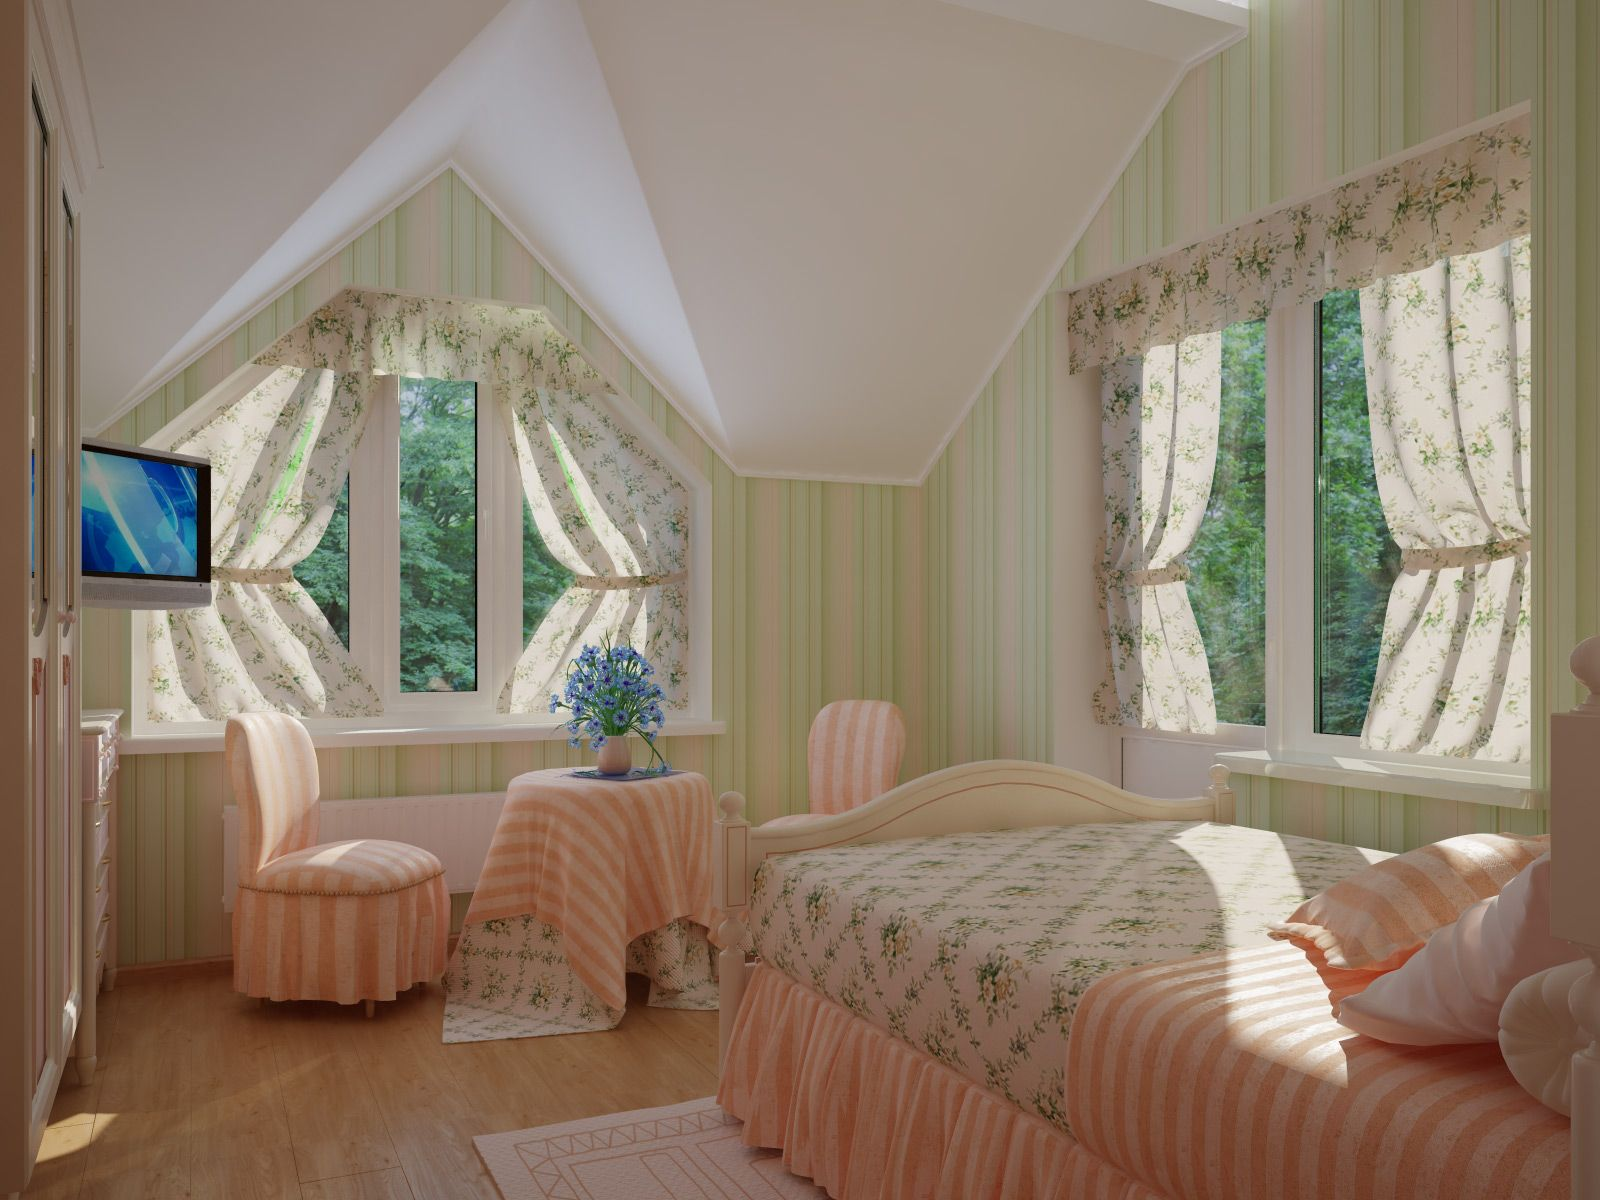 Bedroom Curtains: Full Guide on How to Decorate the Windows. Loft architecture of the top floor bedroom with nice tied up curtains